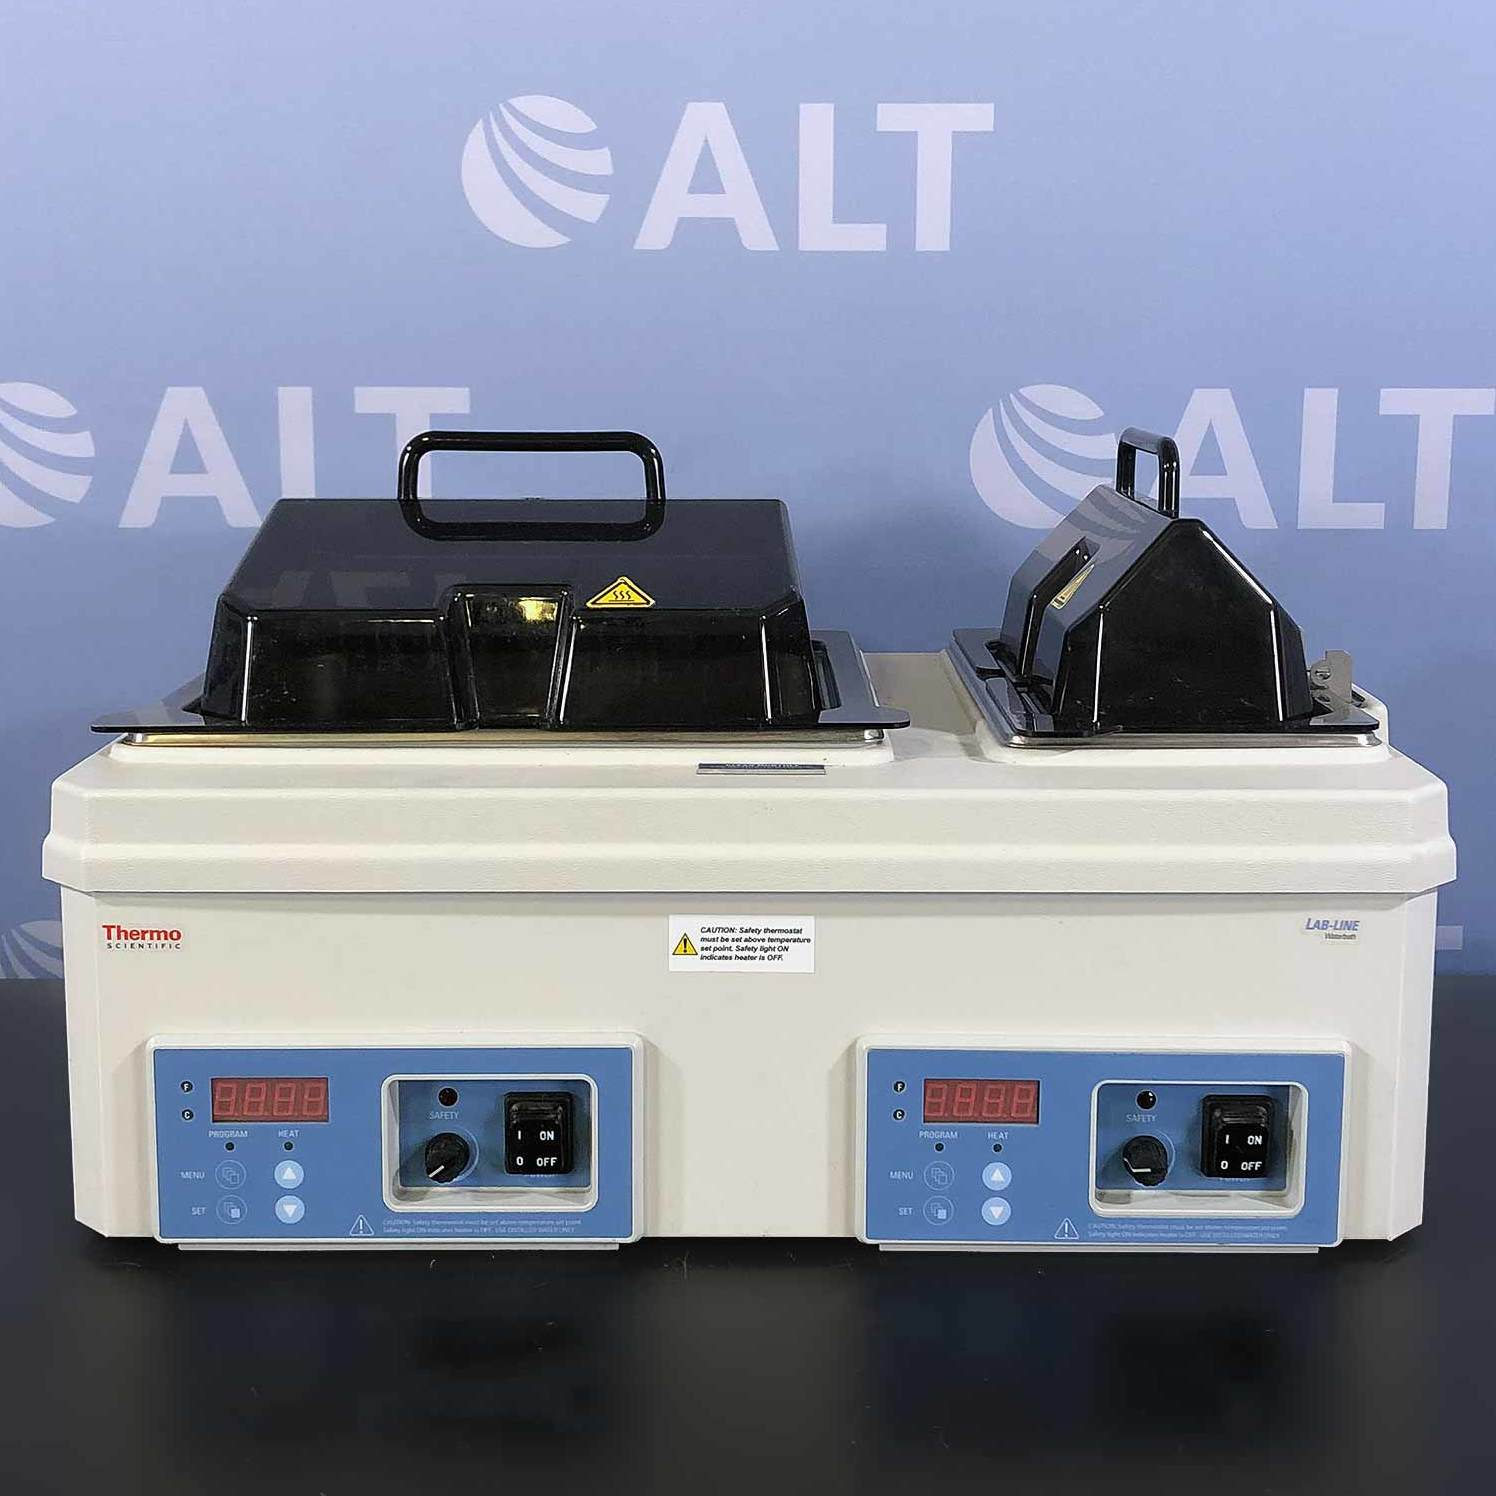 Thermo Scientific Lab-Line Digital AquaBath Water Bath Model 2354 Image